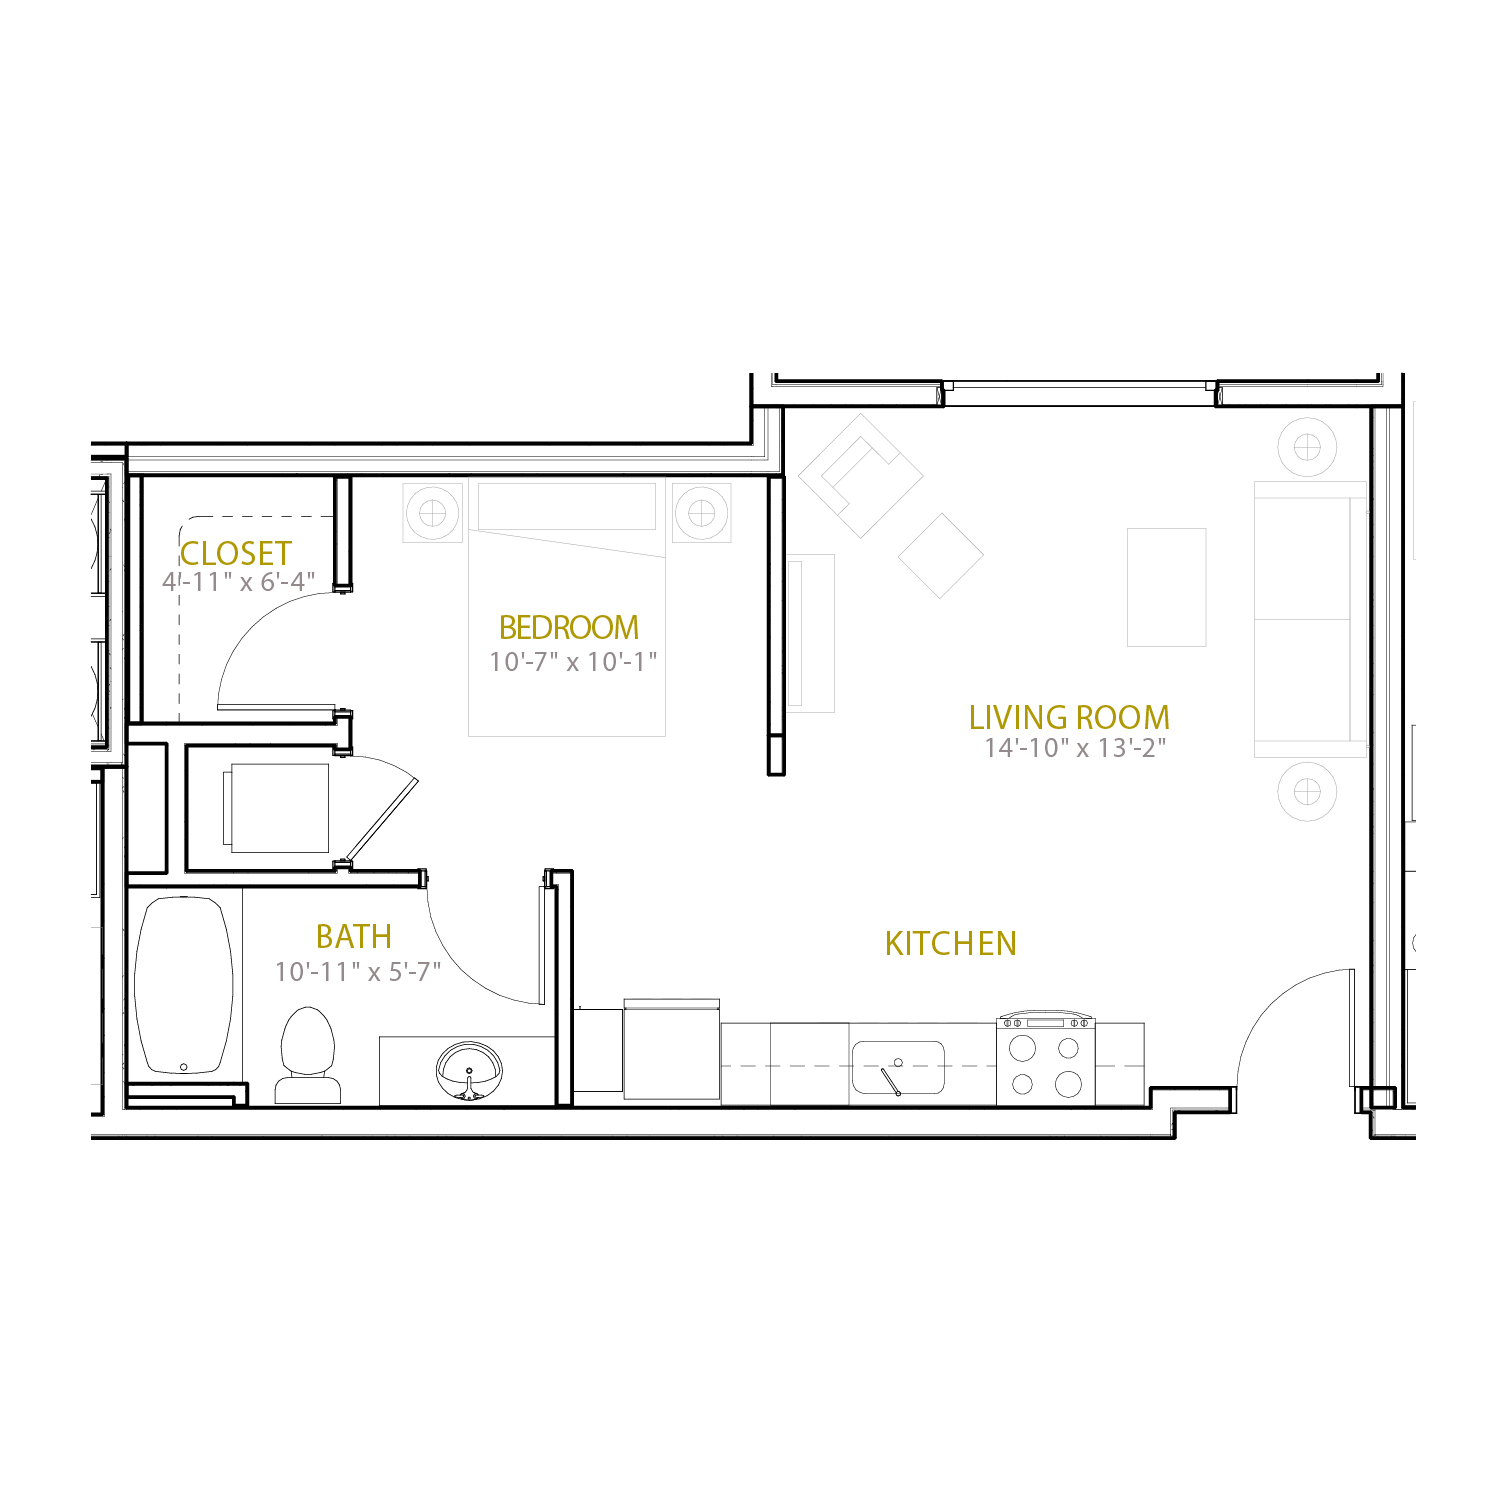 A Five floor plan diagram. A studio apartment with one bathroom and an open kitchen and living space.